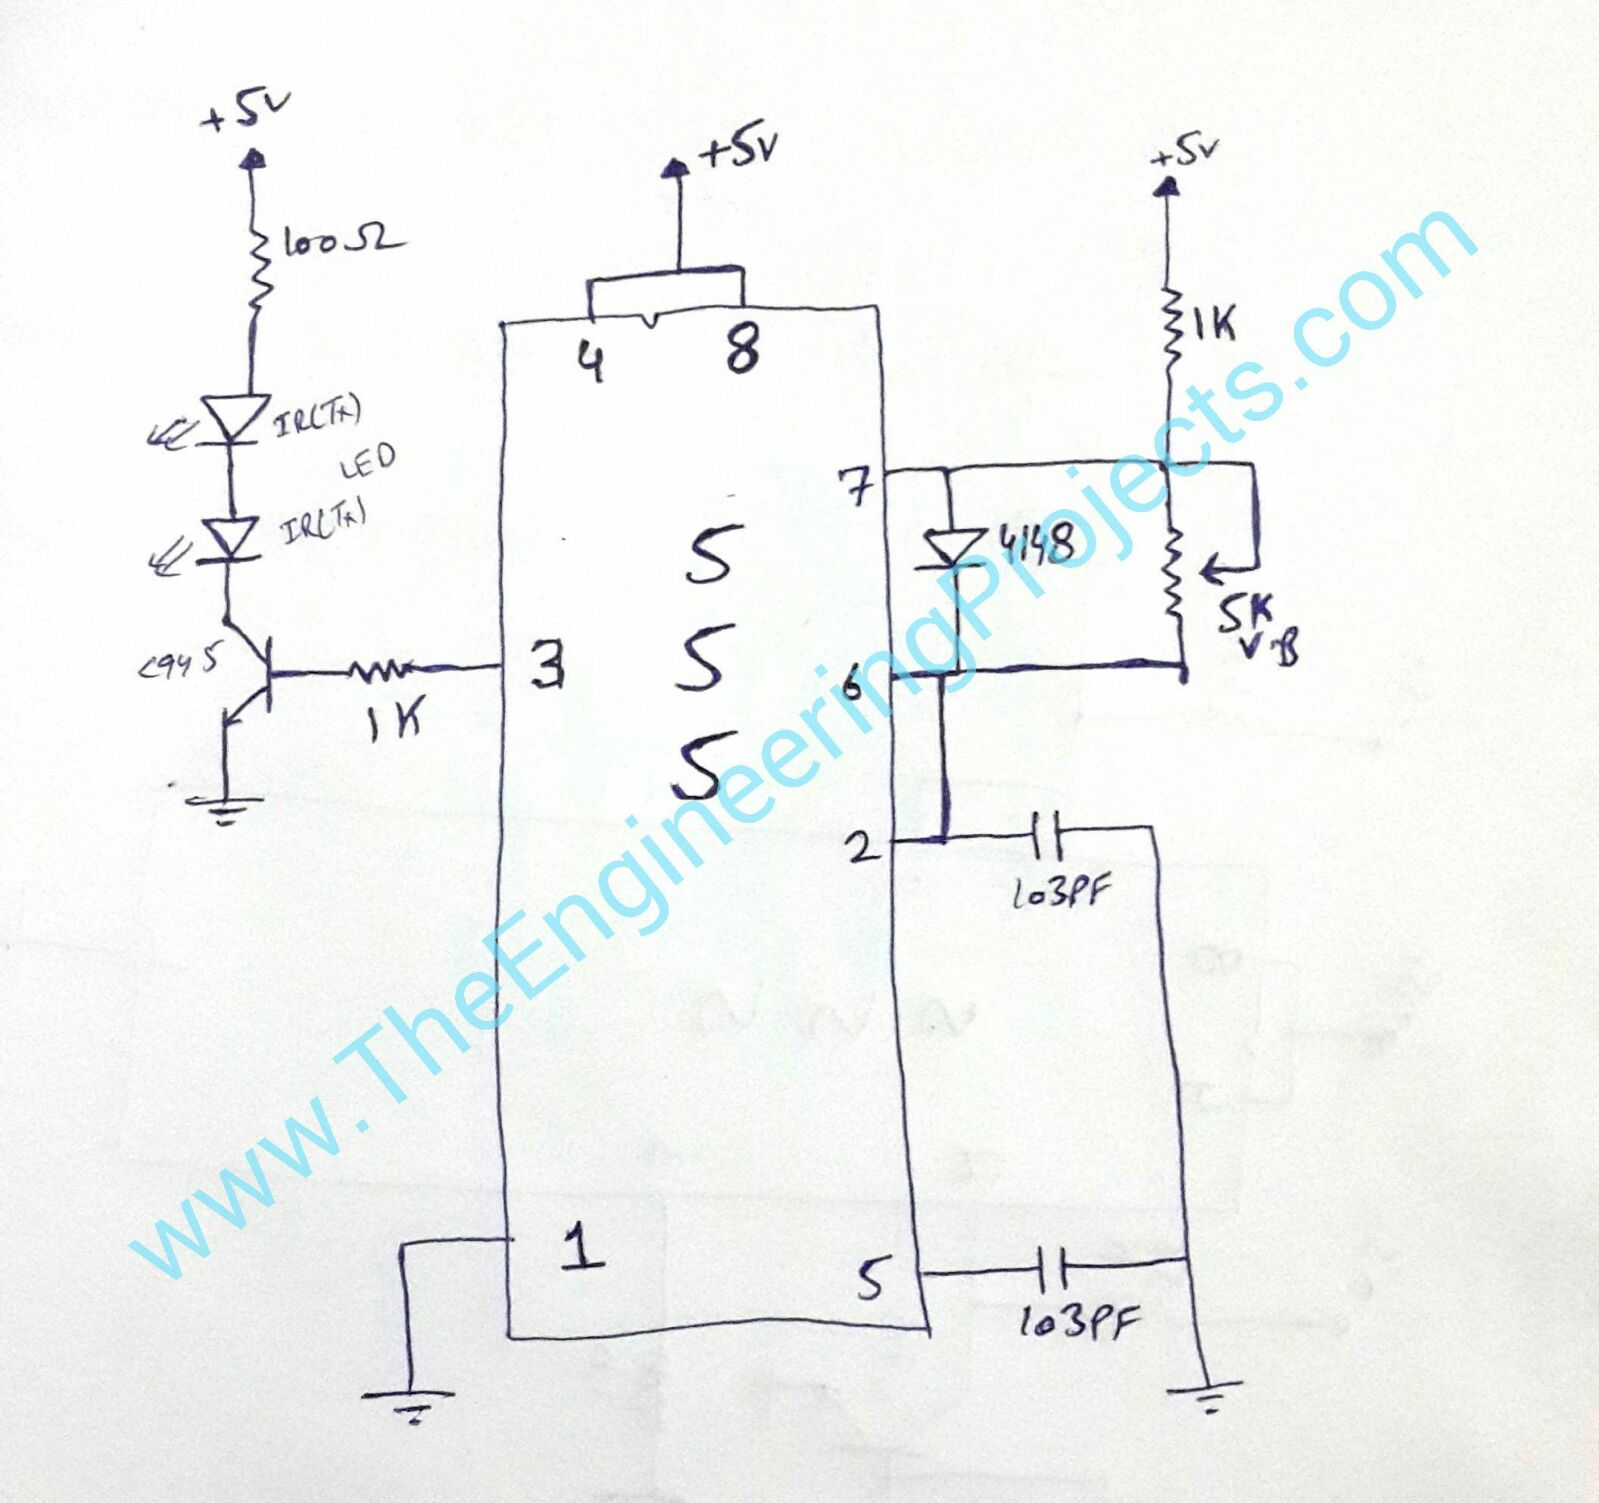 Circuit Diagram Of Ir Sensor Using 555 Timer